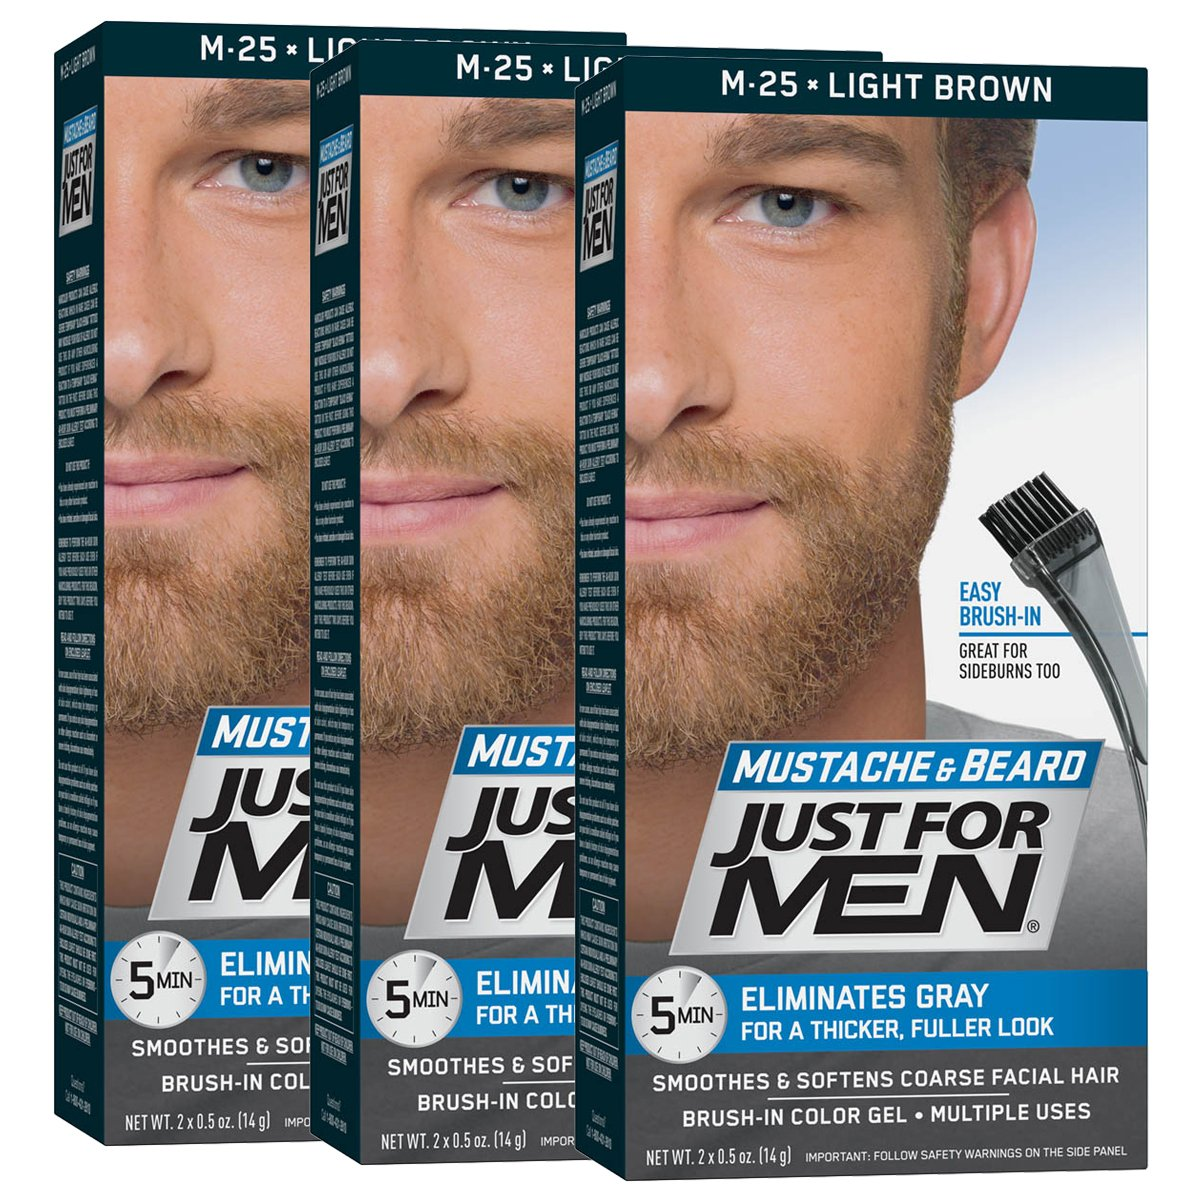 Details about Just For Men Mustache & Beard Brush-In Color Gel, Light Brown  (Pack of 3)